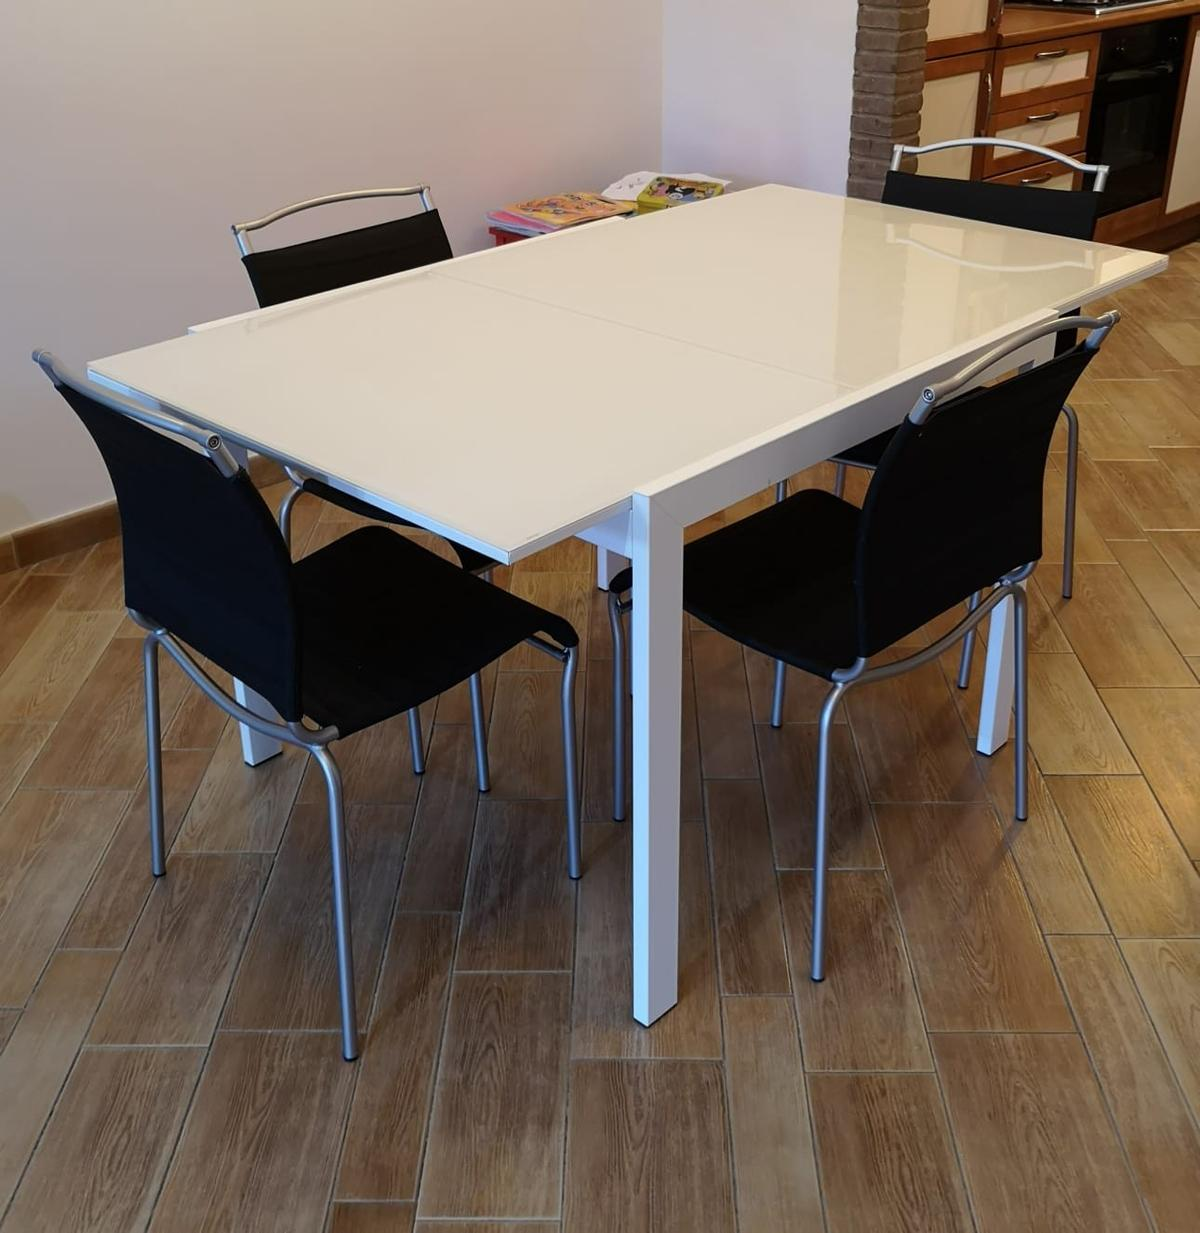 Tavolo Calligaris In 00126 Roma For 180 00 For Sale Shpock